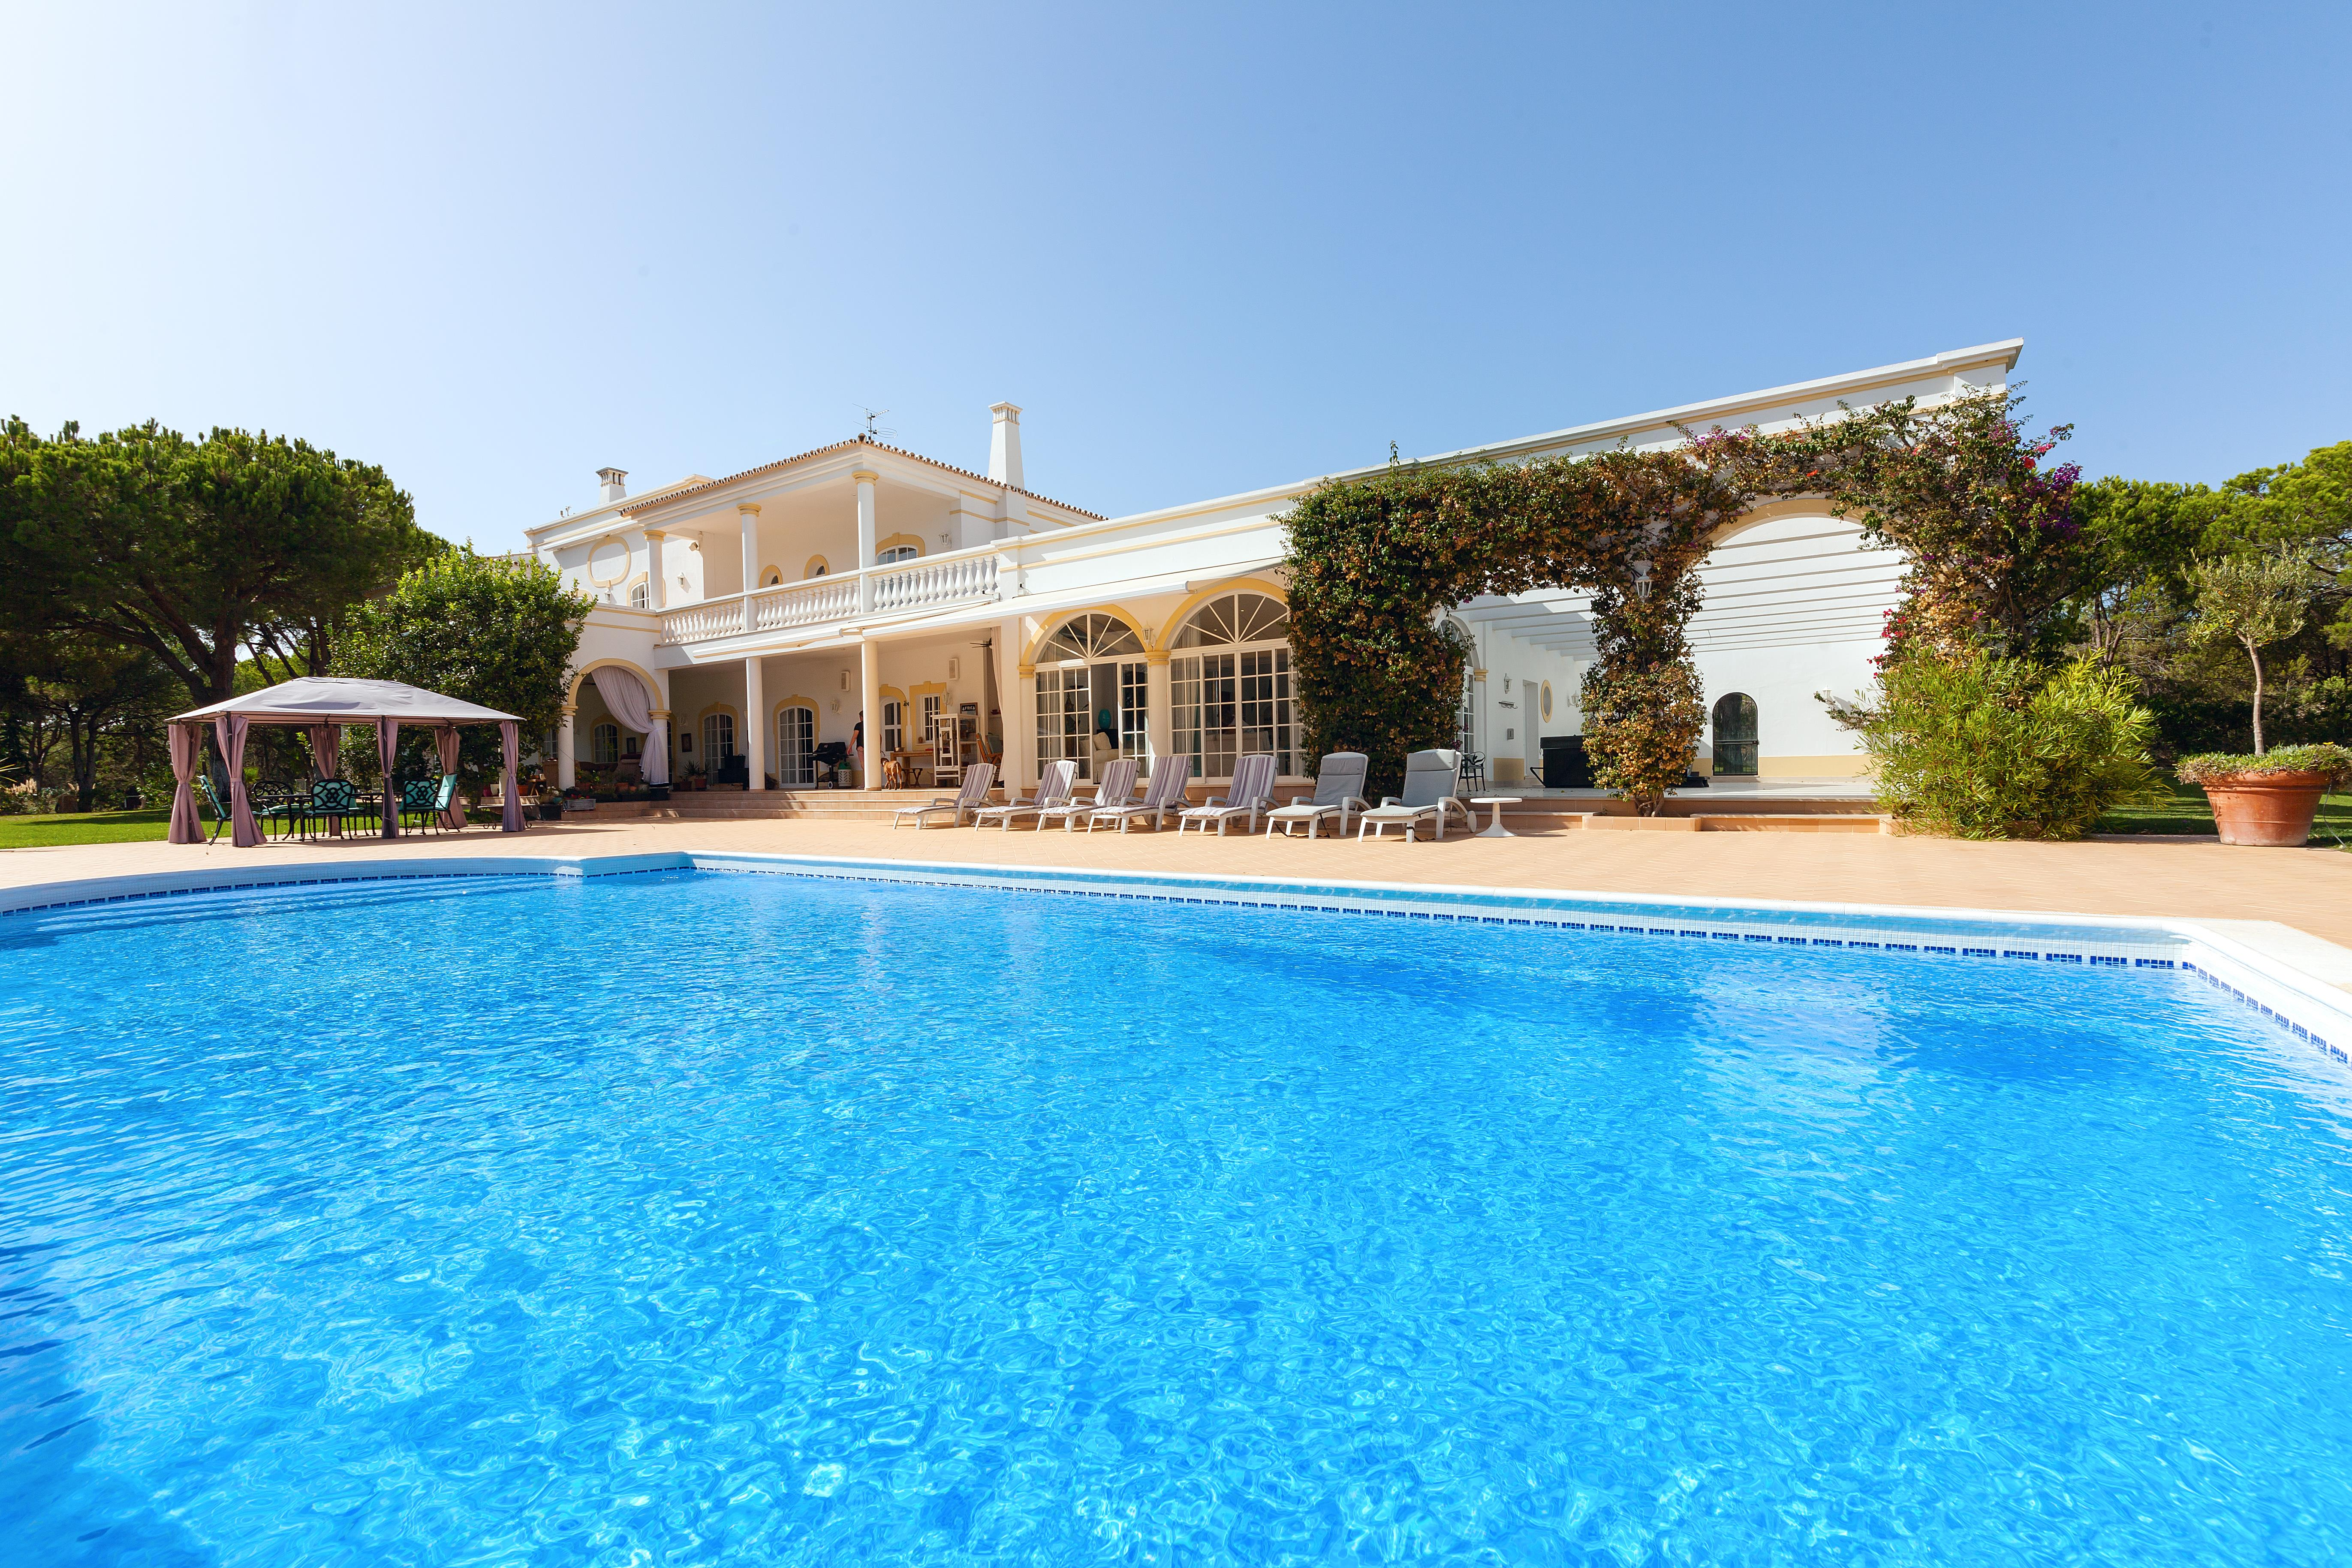 Single Family Home for Sale at Detached house, 7 bedrooms, for Sale Loule, Algarve, 8135-172 Portugal